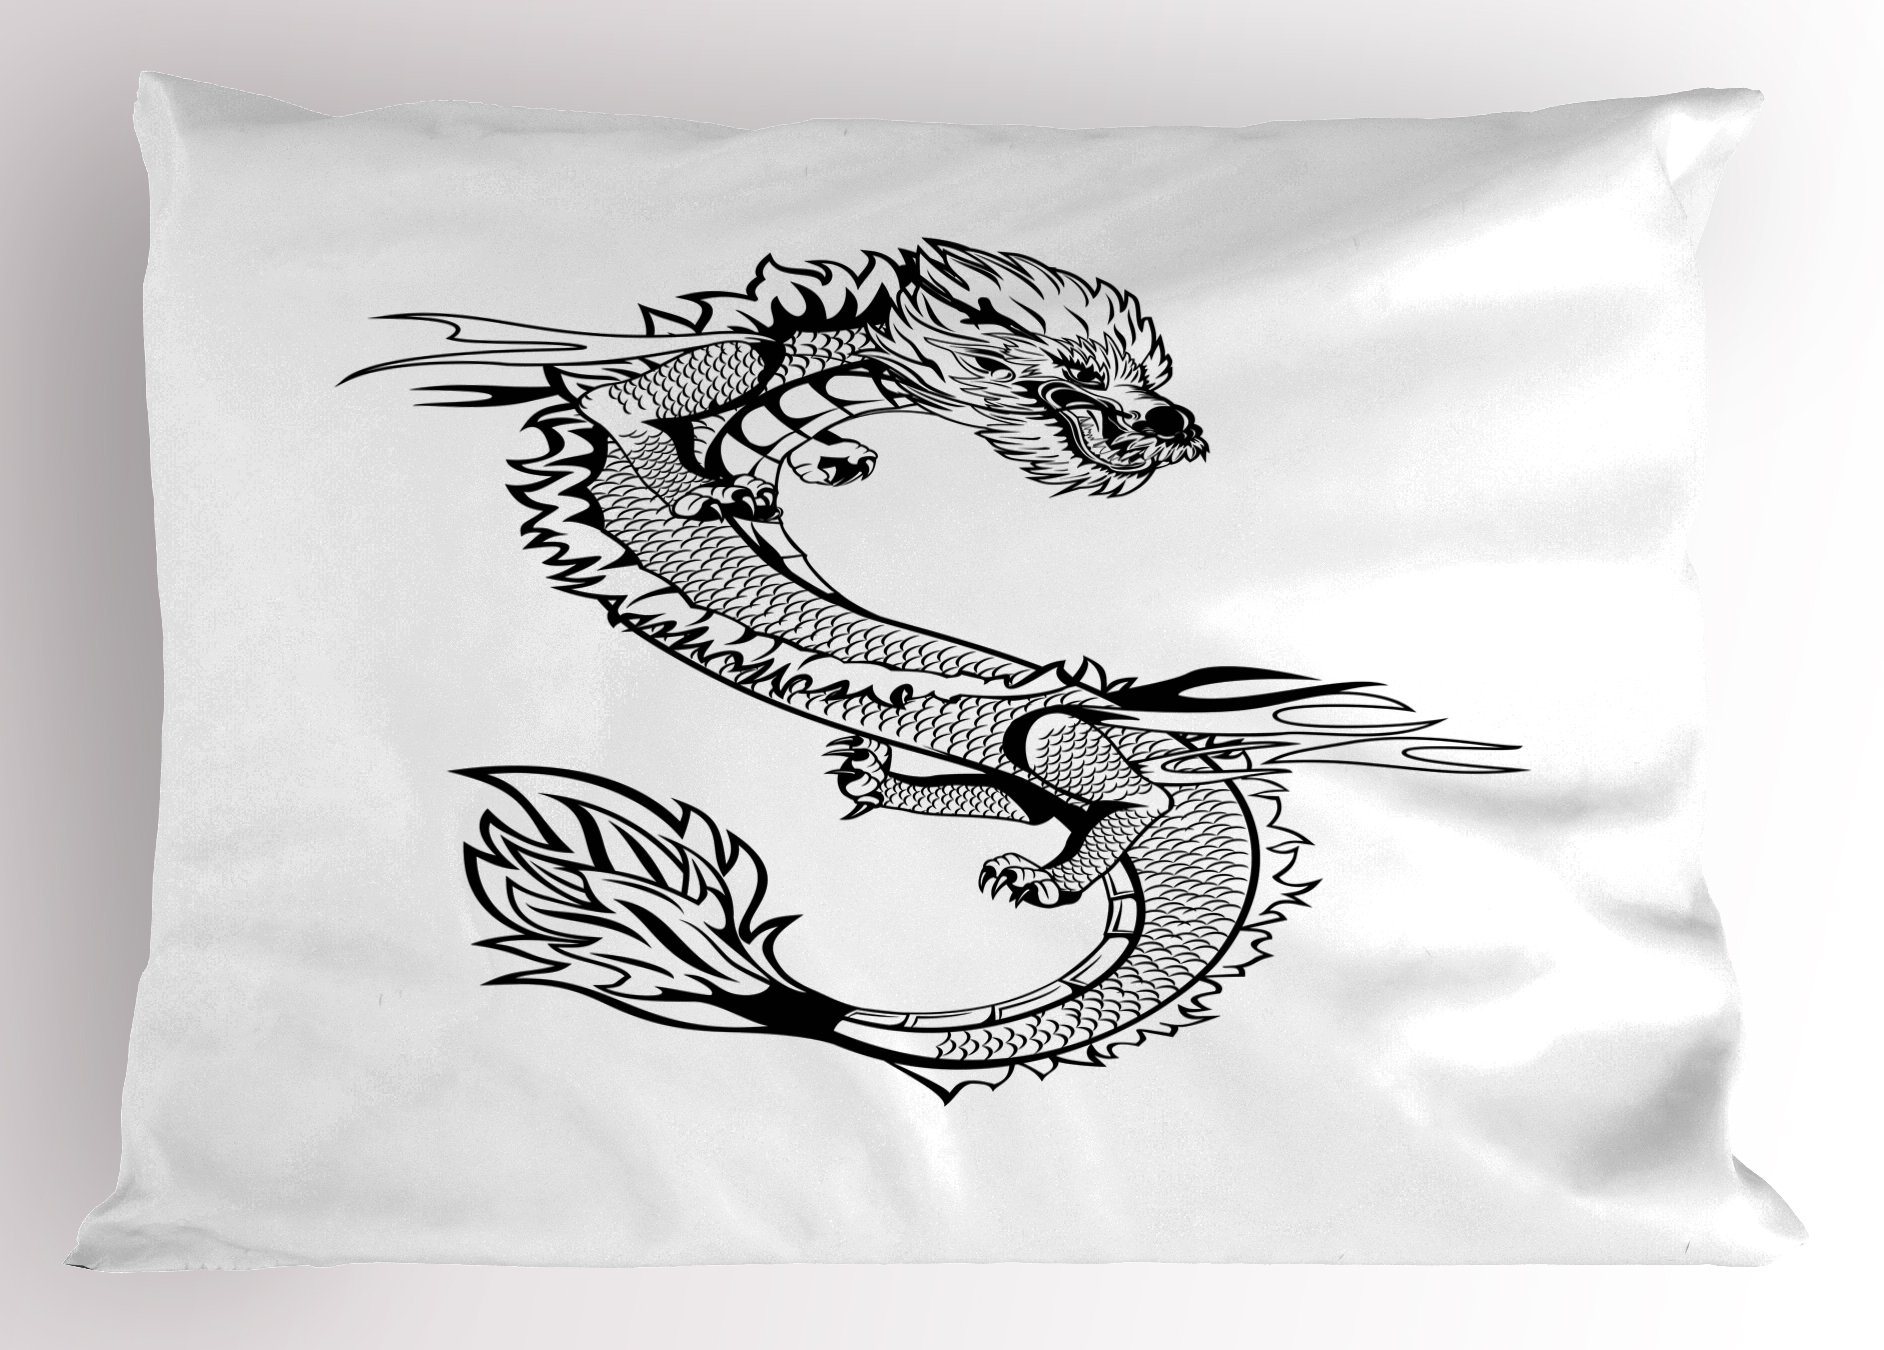 Ambesonne Japanese Dragon Pillow Sham, Ancient Far Eastern Culture Esoteric Magical Monster Symbolic Thai Style, Decorative Standard Queen Size Printed Pillowcase, 30 X 20 Inches, Black White by Ambesonne